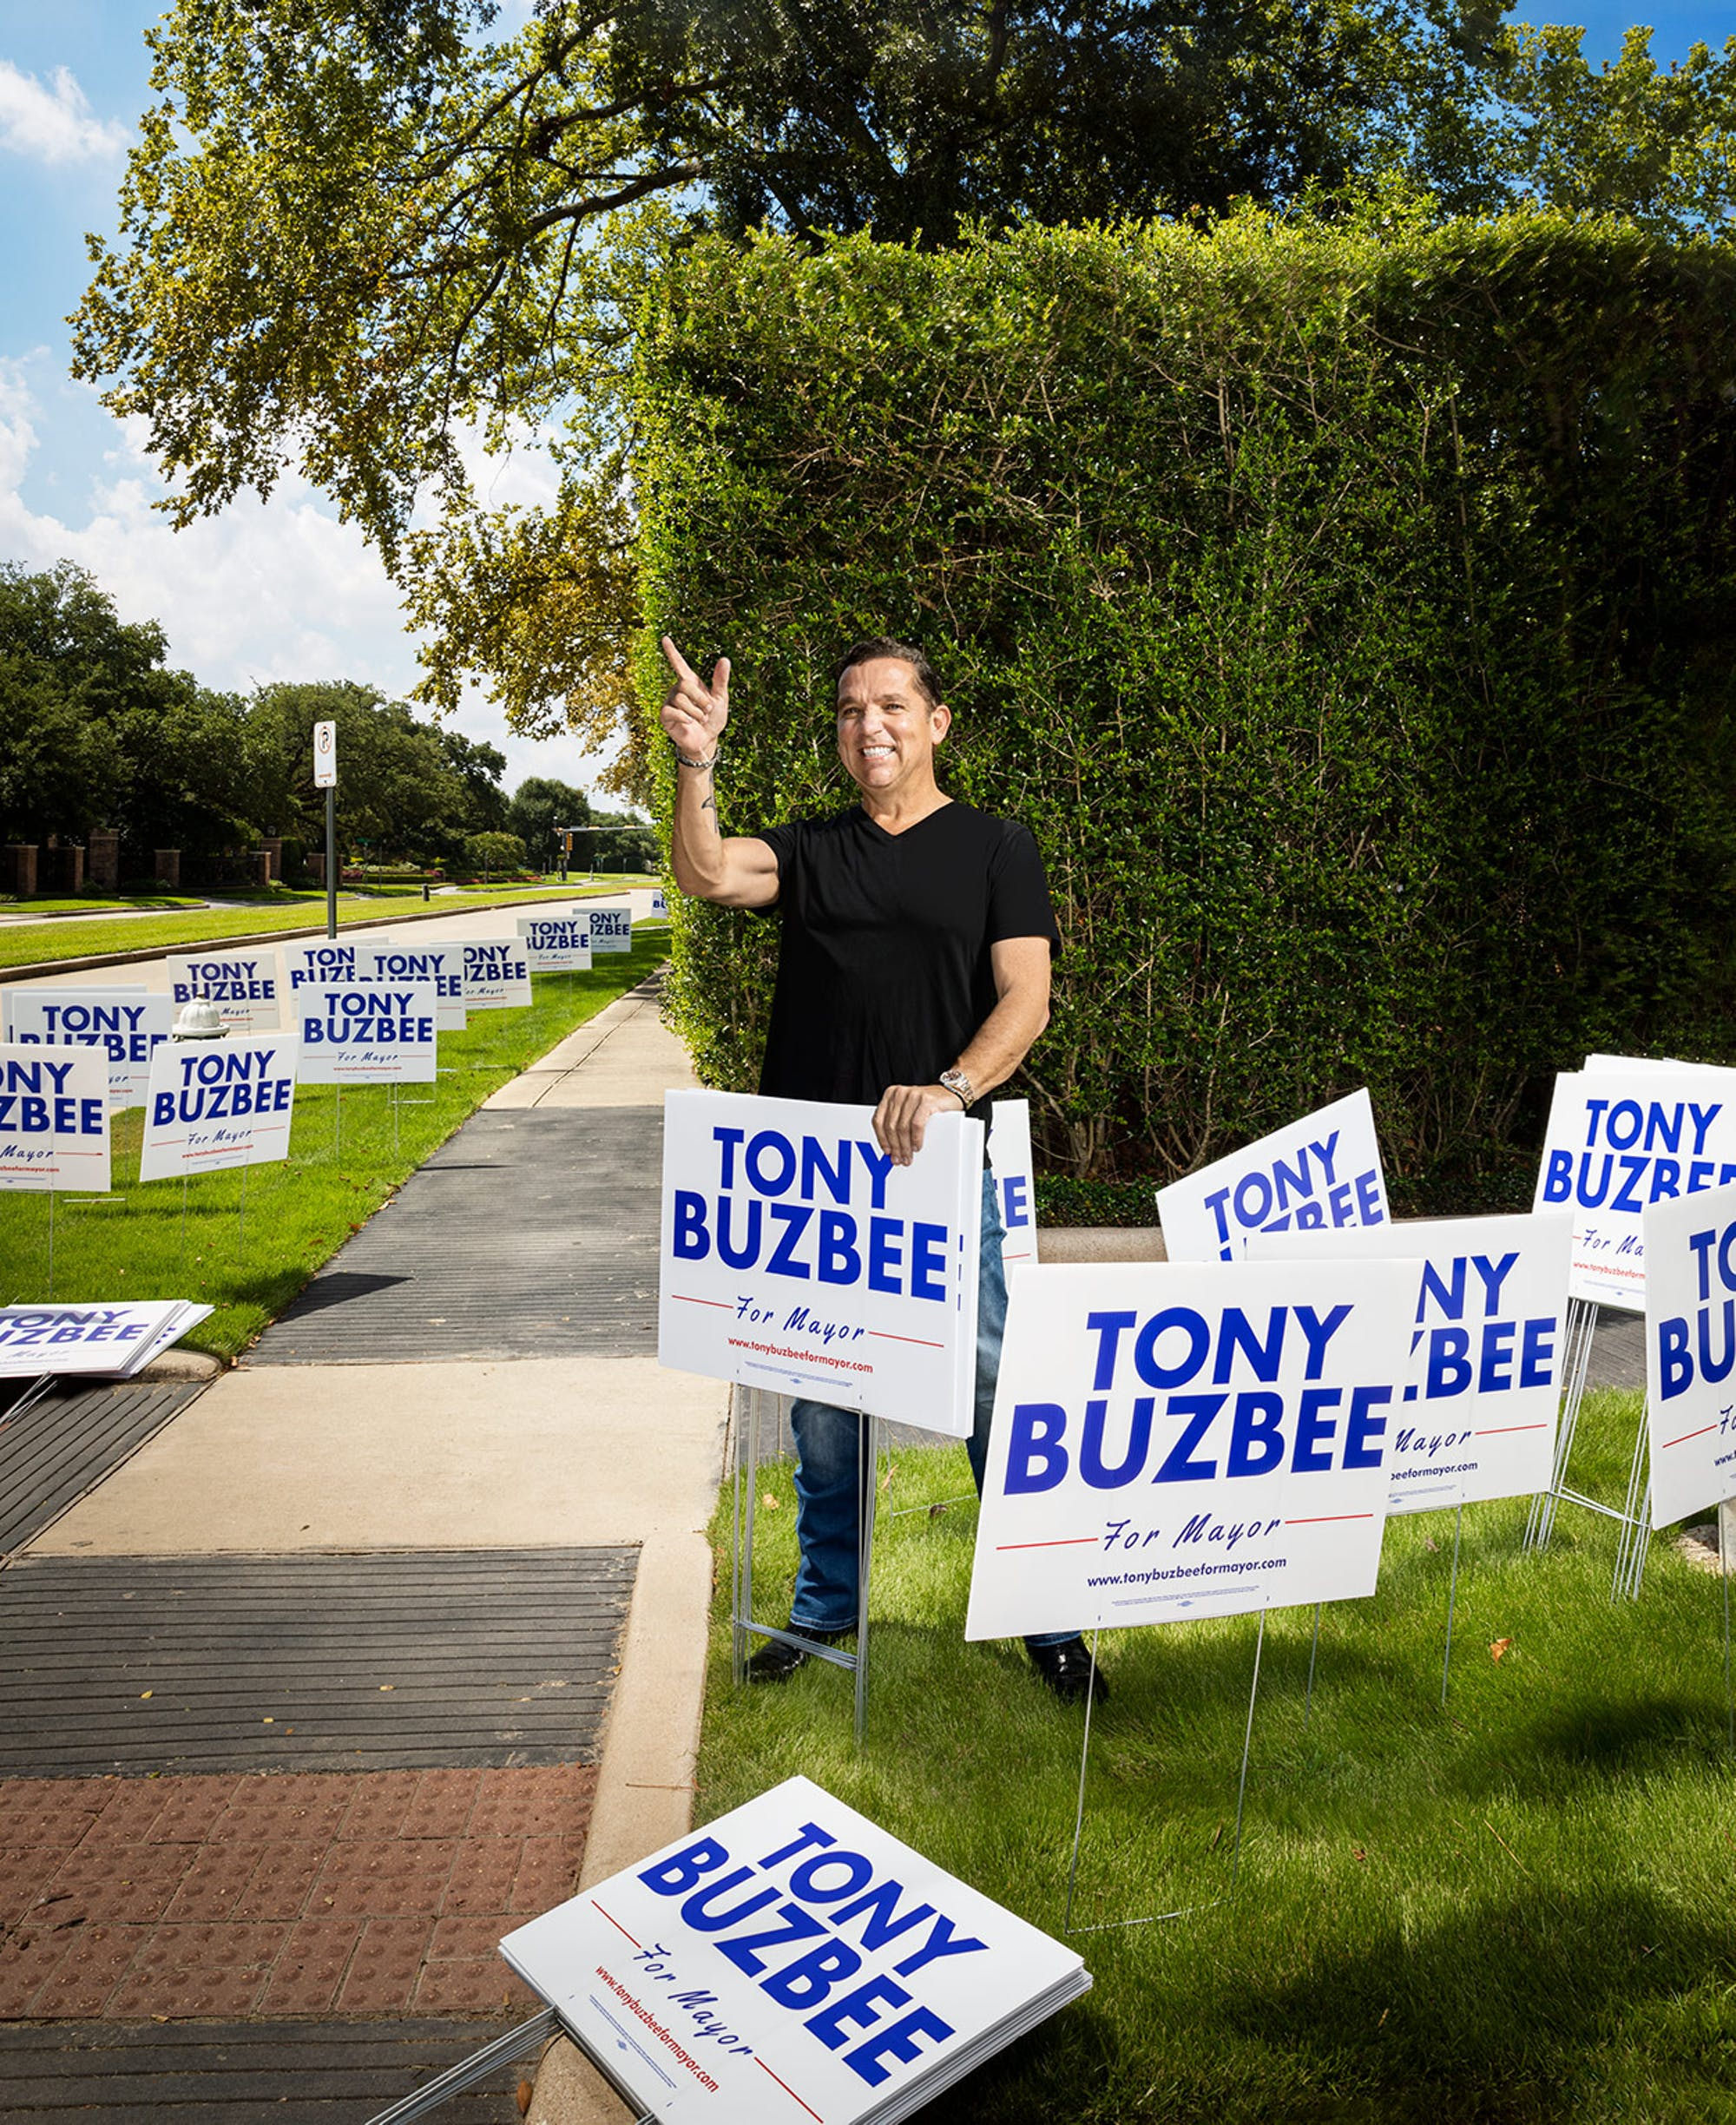 Tony Buzbee in his Houston neighborhood